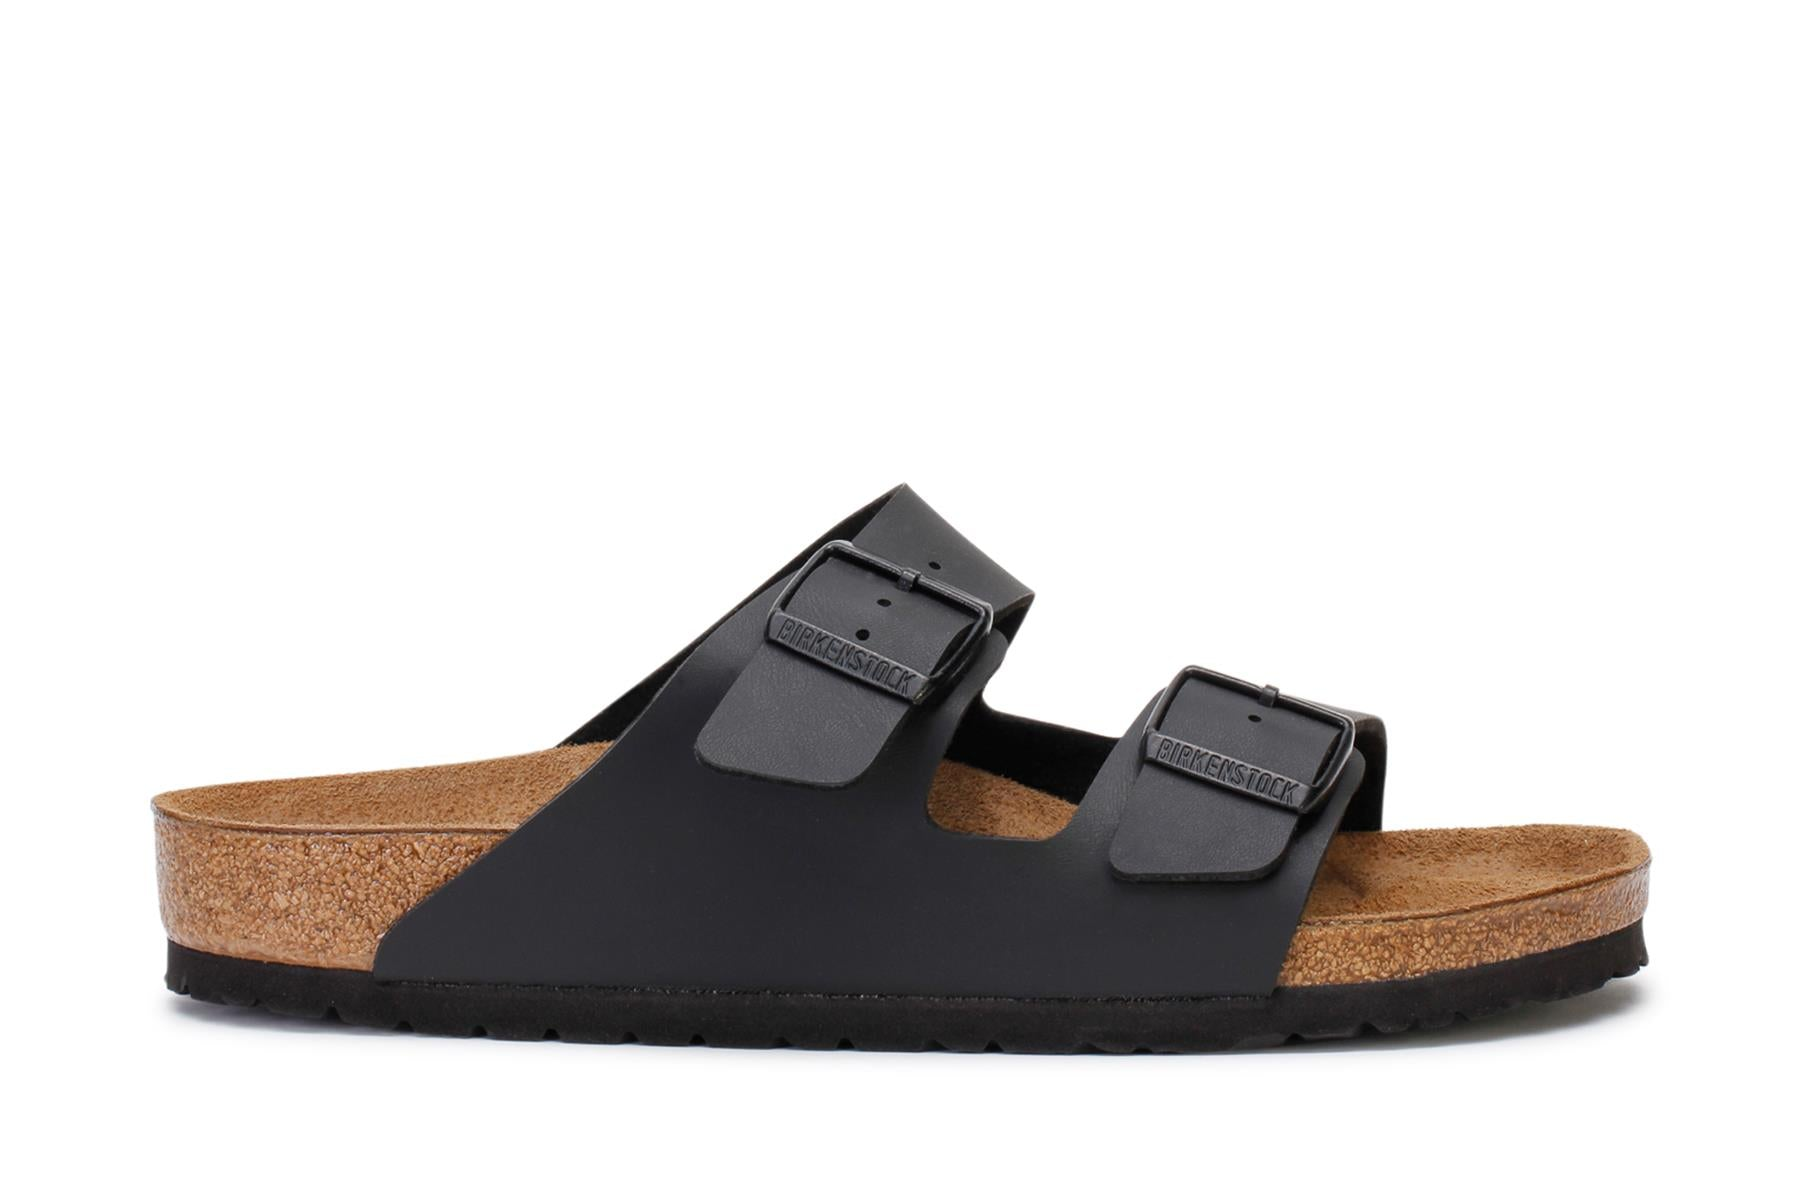 Arizona Birko Flor Birkenstock Sandals